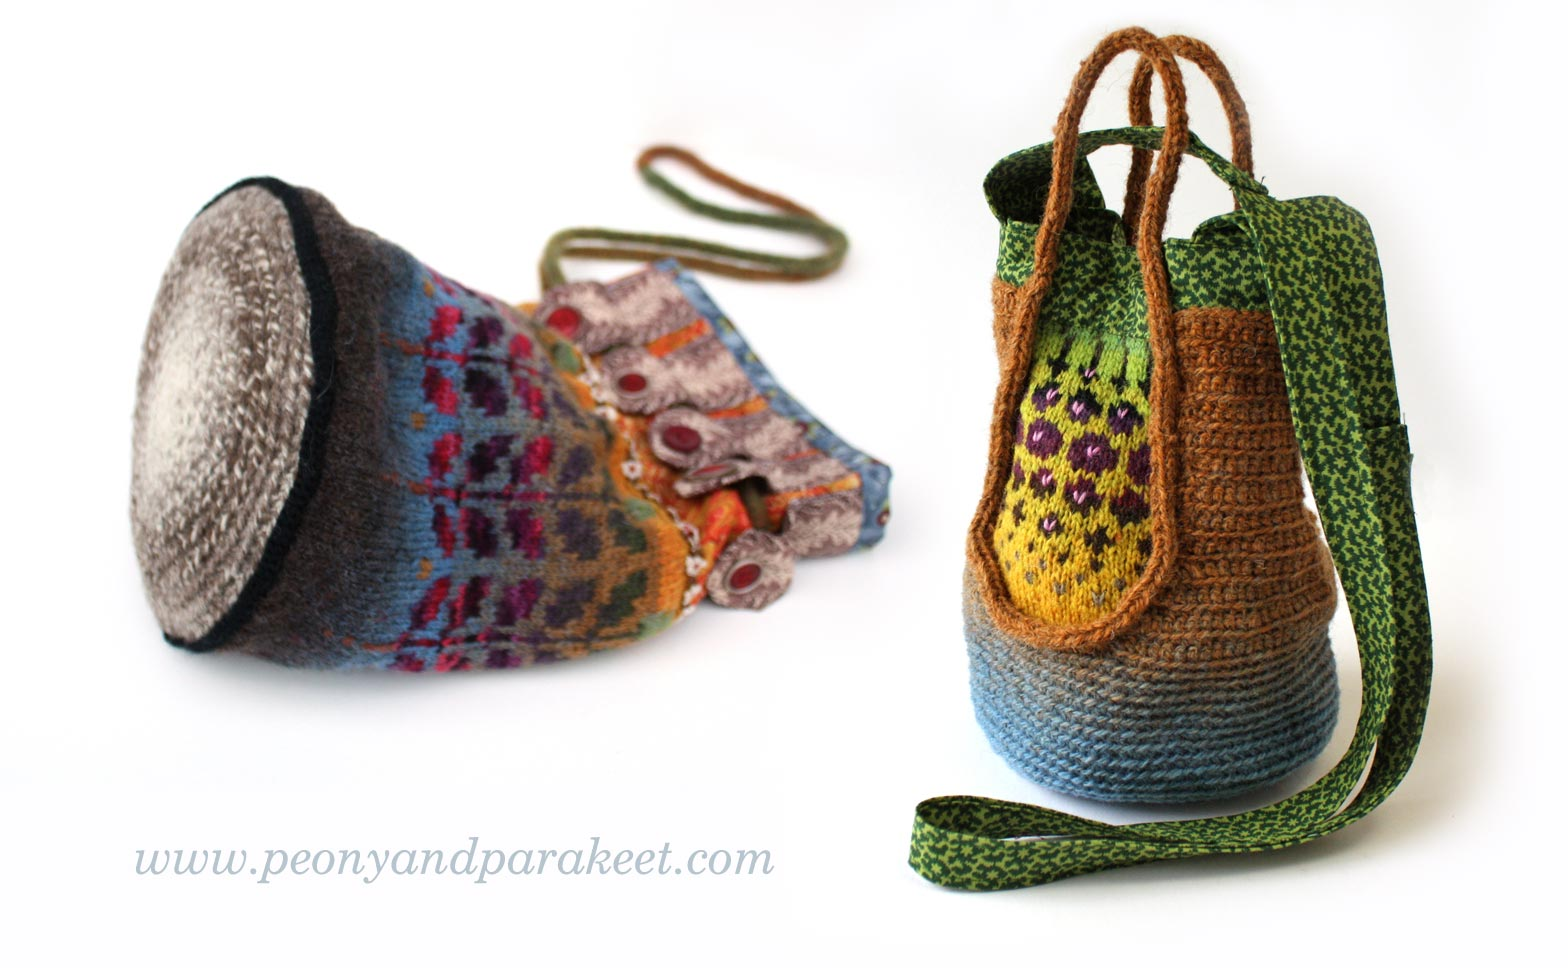 Knitted bags by Peony and Parakeet